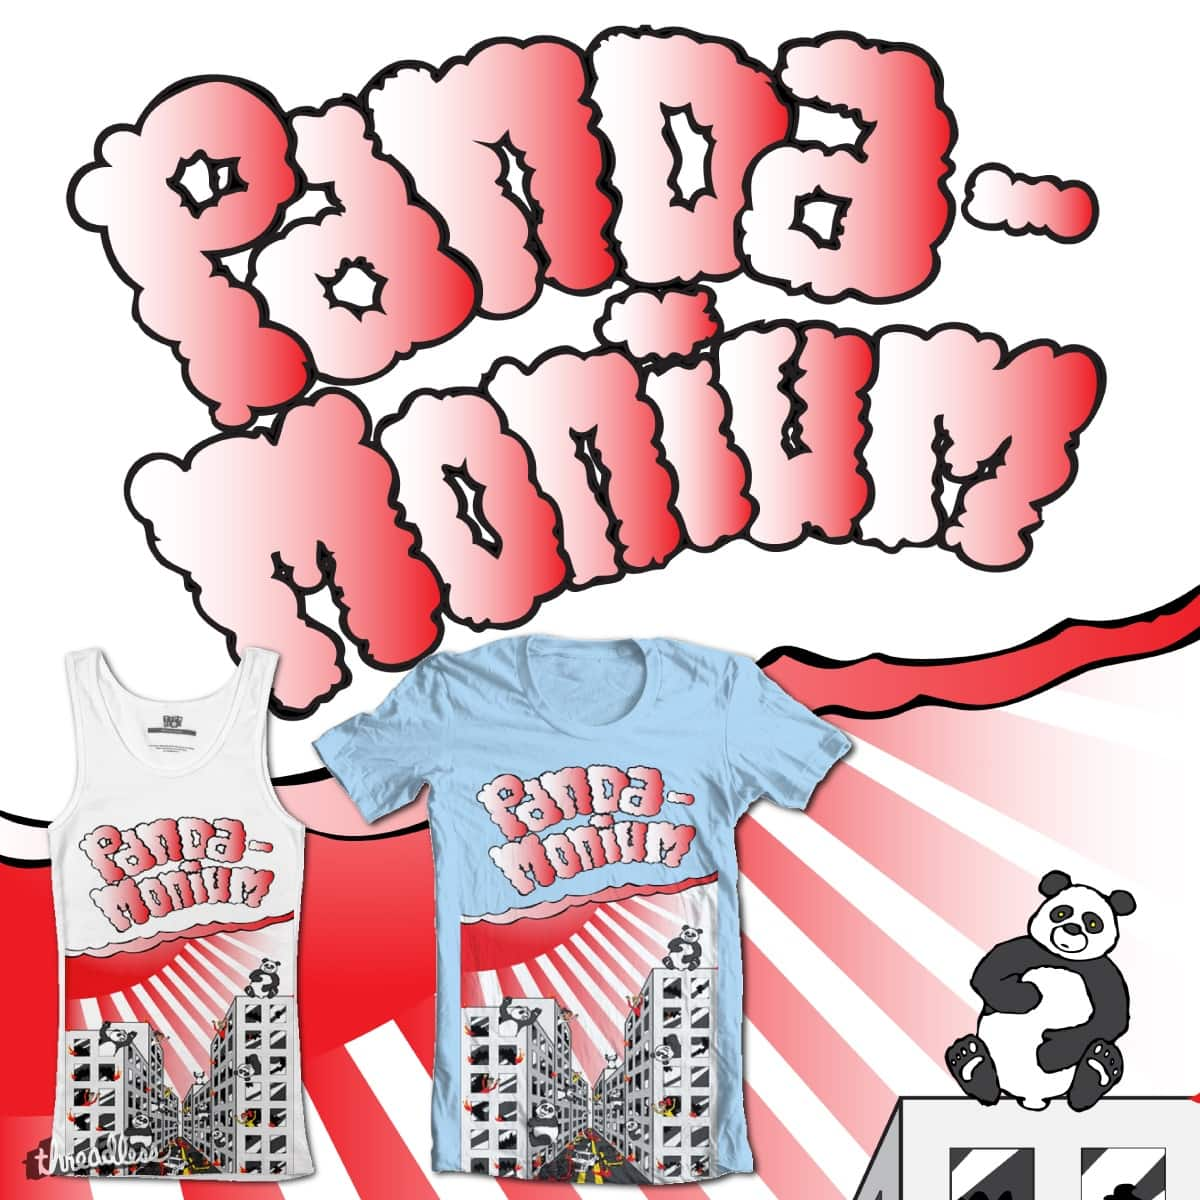 Panda-Monium by RyanKozar on Threadless